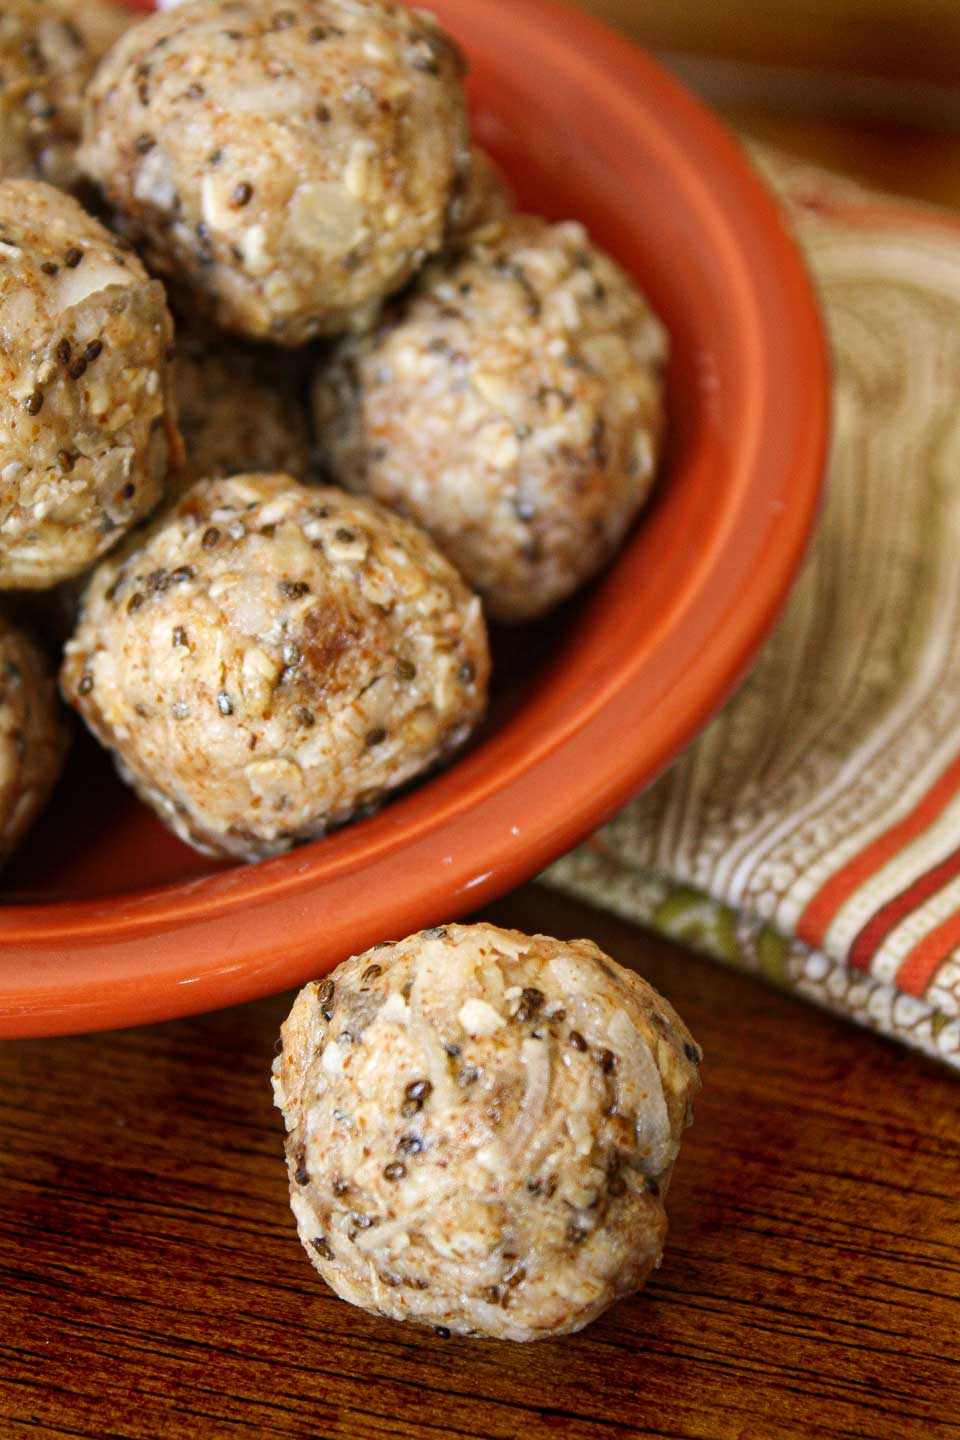 An orange bowl filled with these energy balls, sitting on a decorative napkin, with one ball rolled out in front, onto the wooden table.